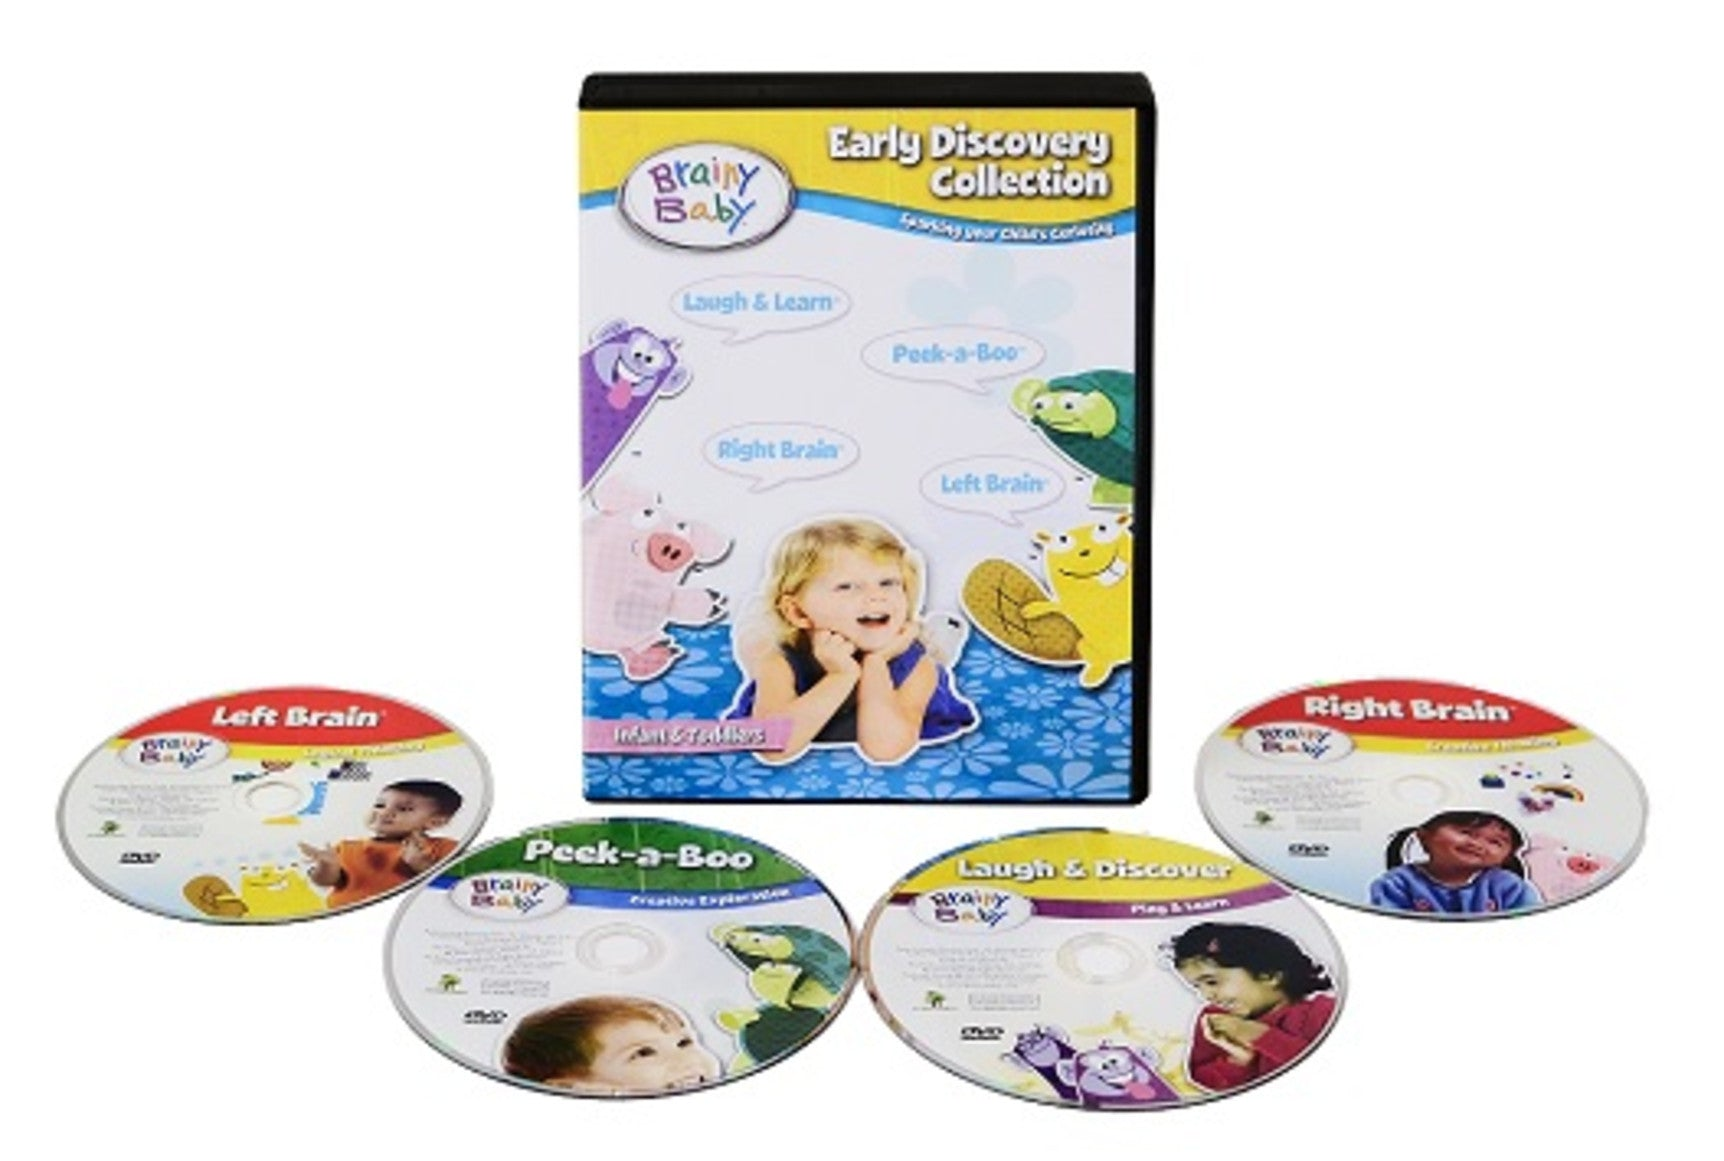 Brainy Baby Infant Brain Development Learning Collection 4 DVD Set